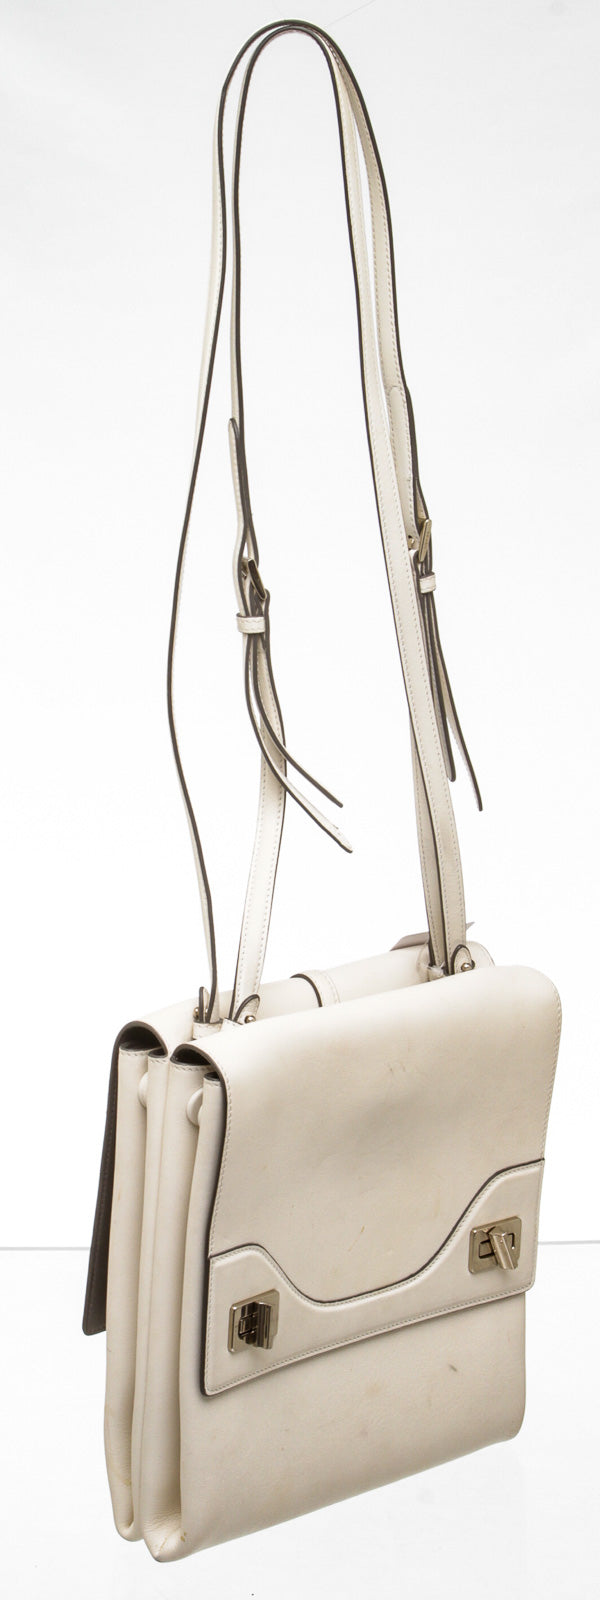 Prada Cream Leather Double-Sided Flap Shoulder Bag